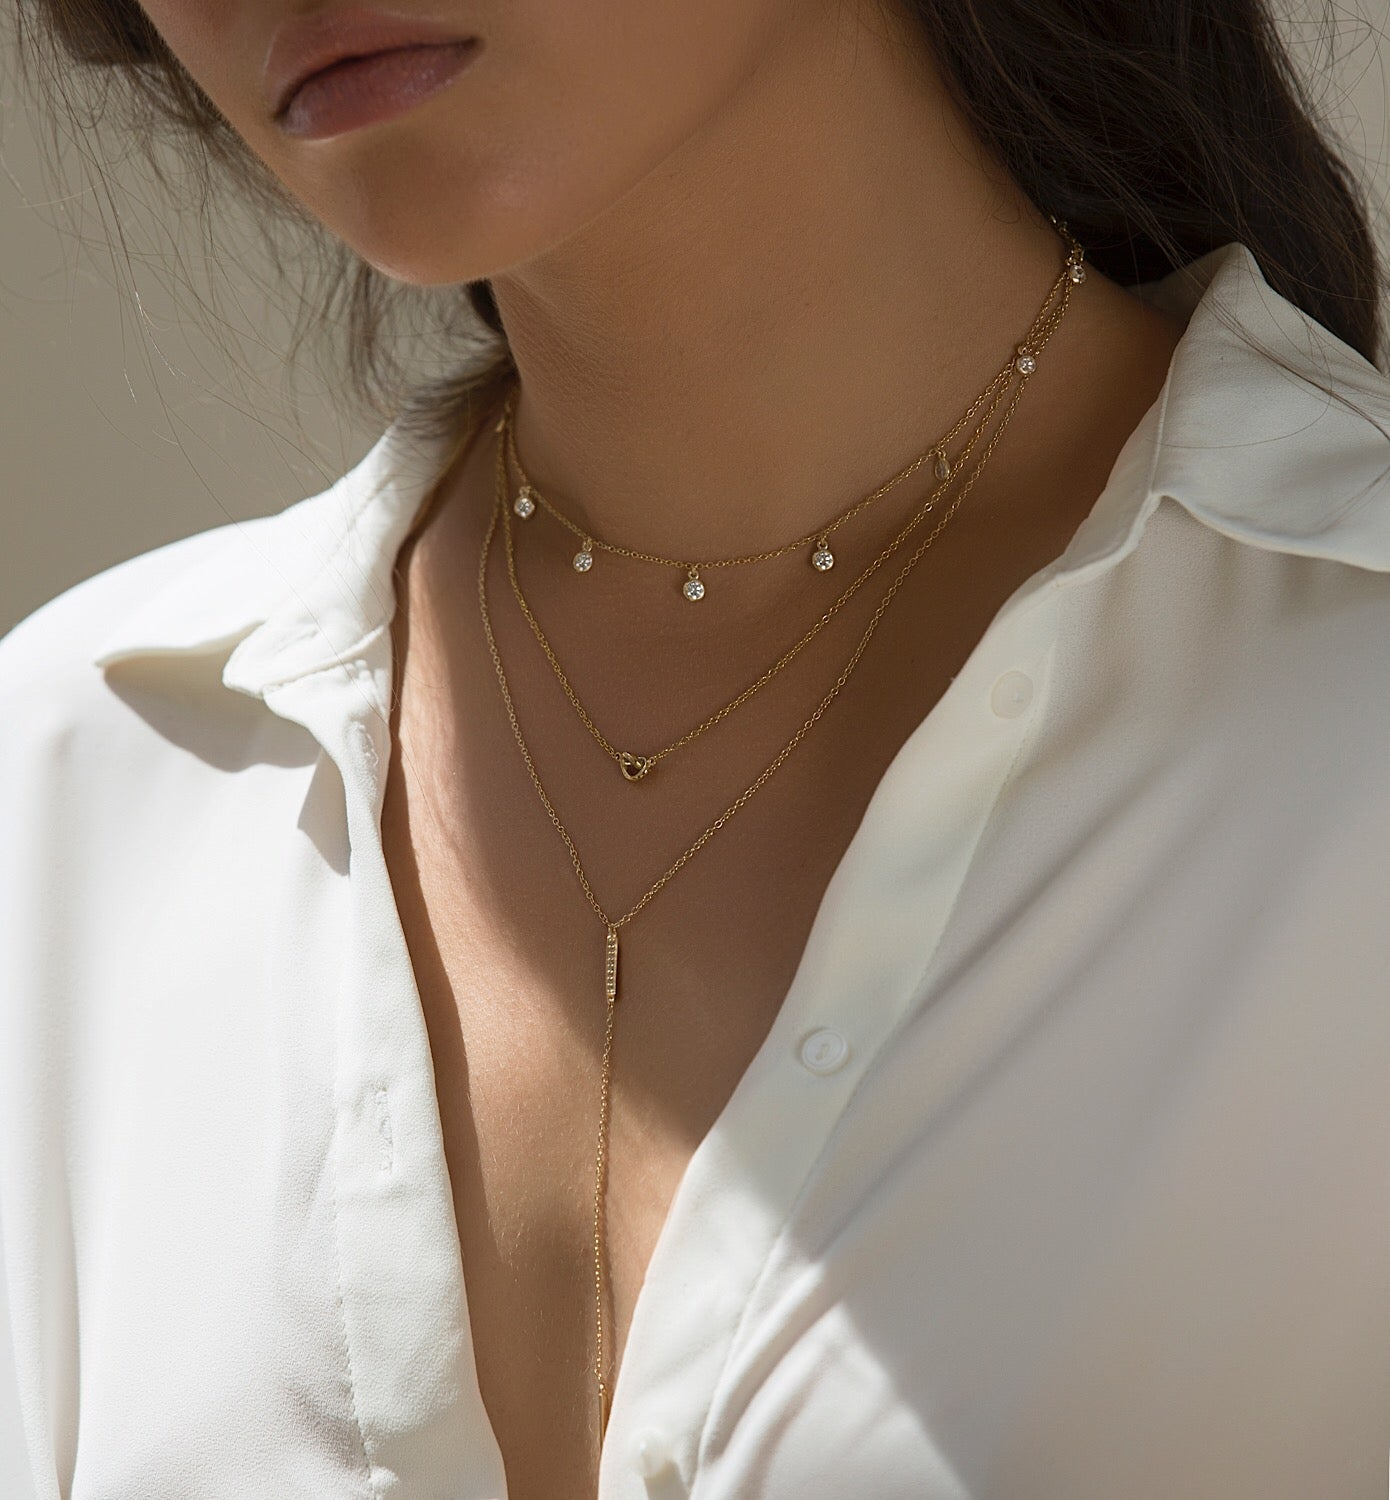 Gigi Bar Lariat, Necklaces - AMY O. Jewelry